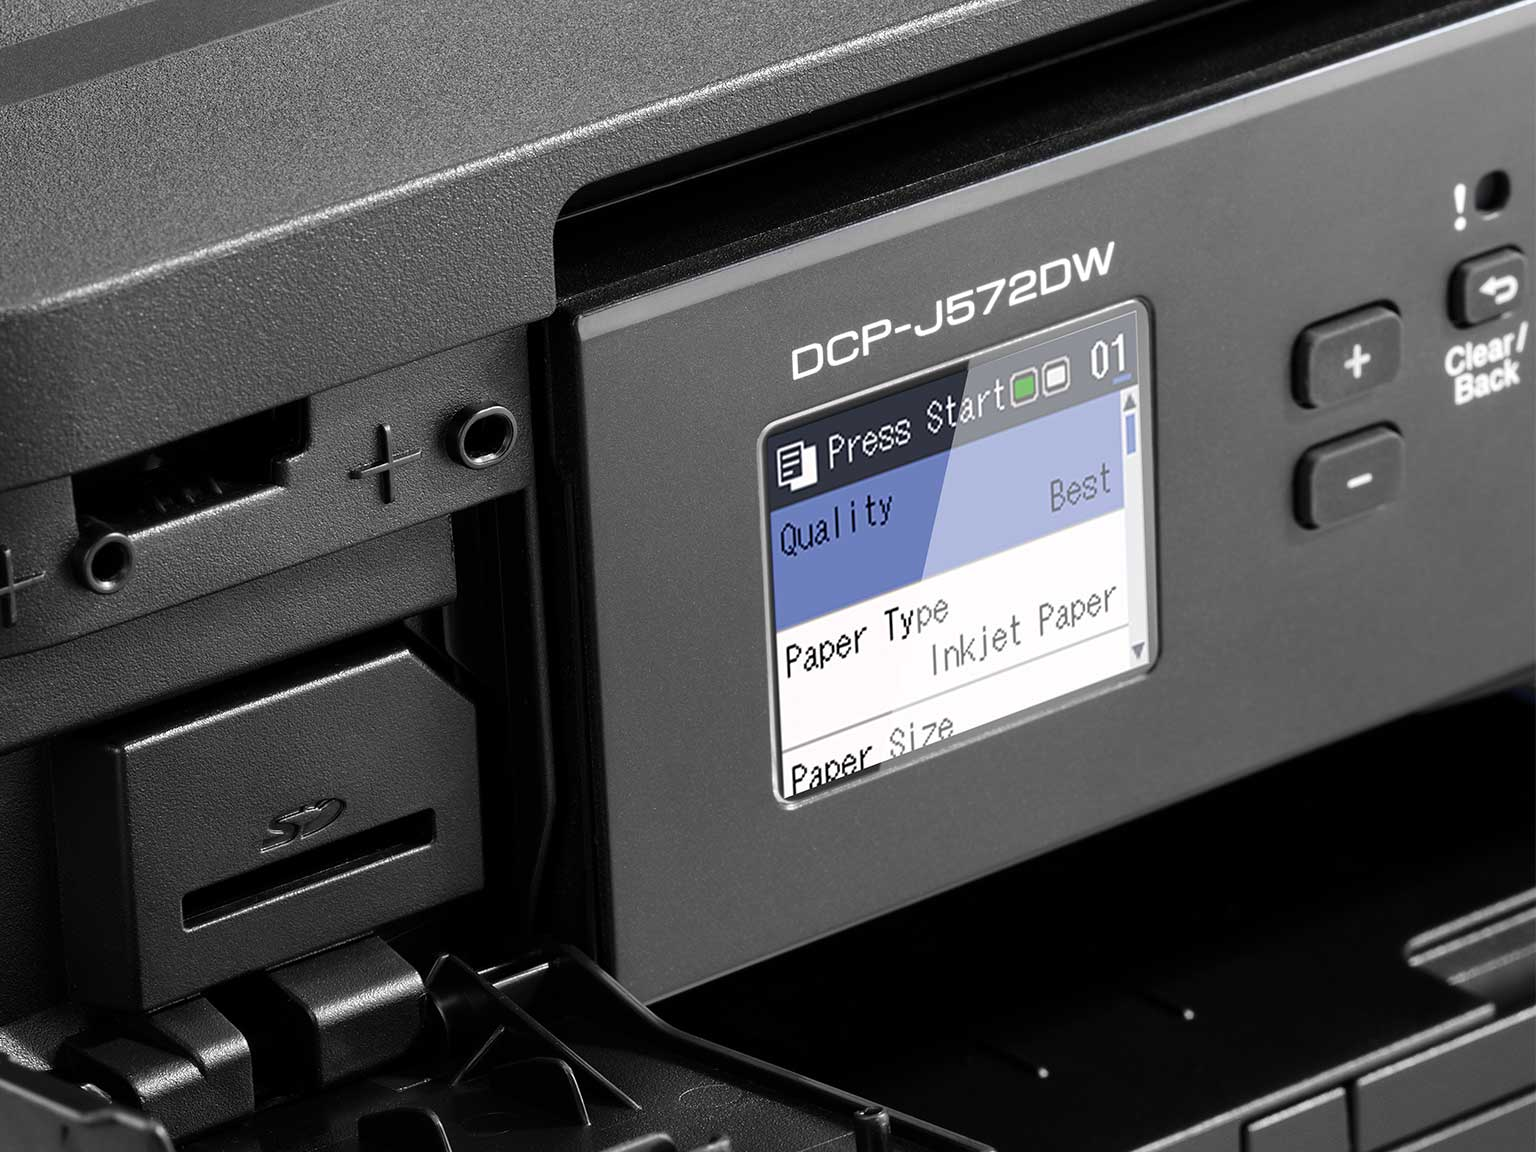 Close-up of Brother DCP-J572DW inkjet printer